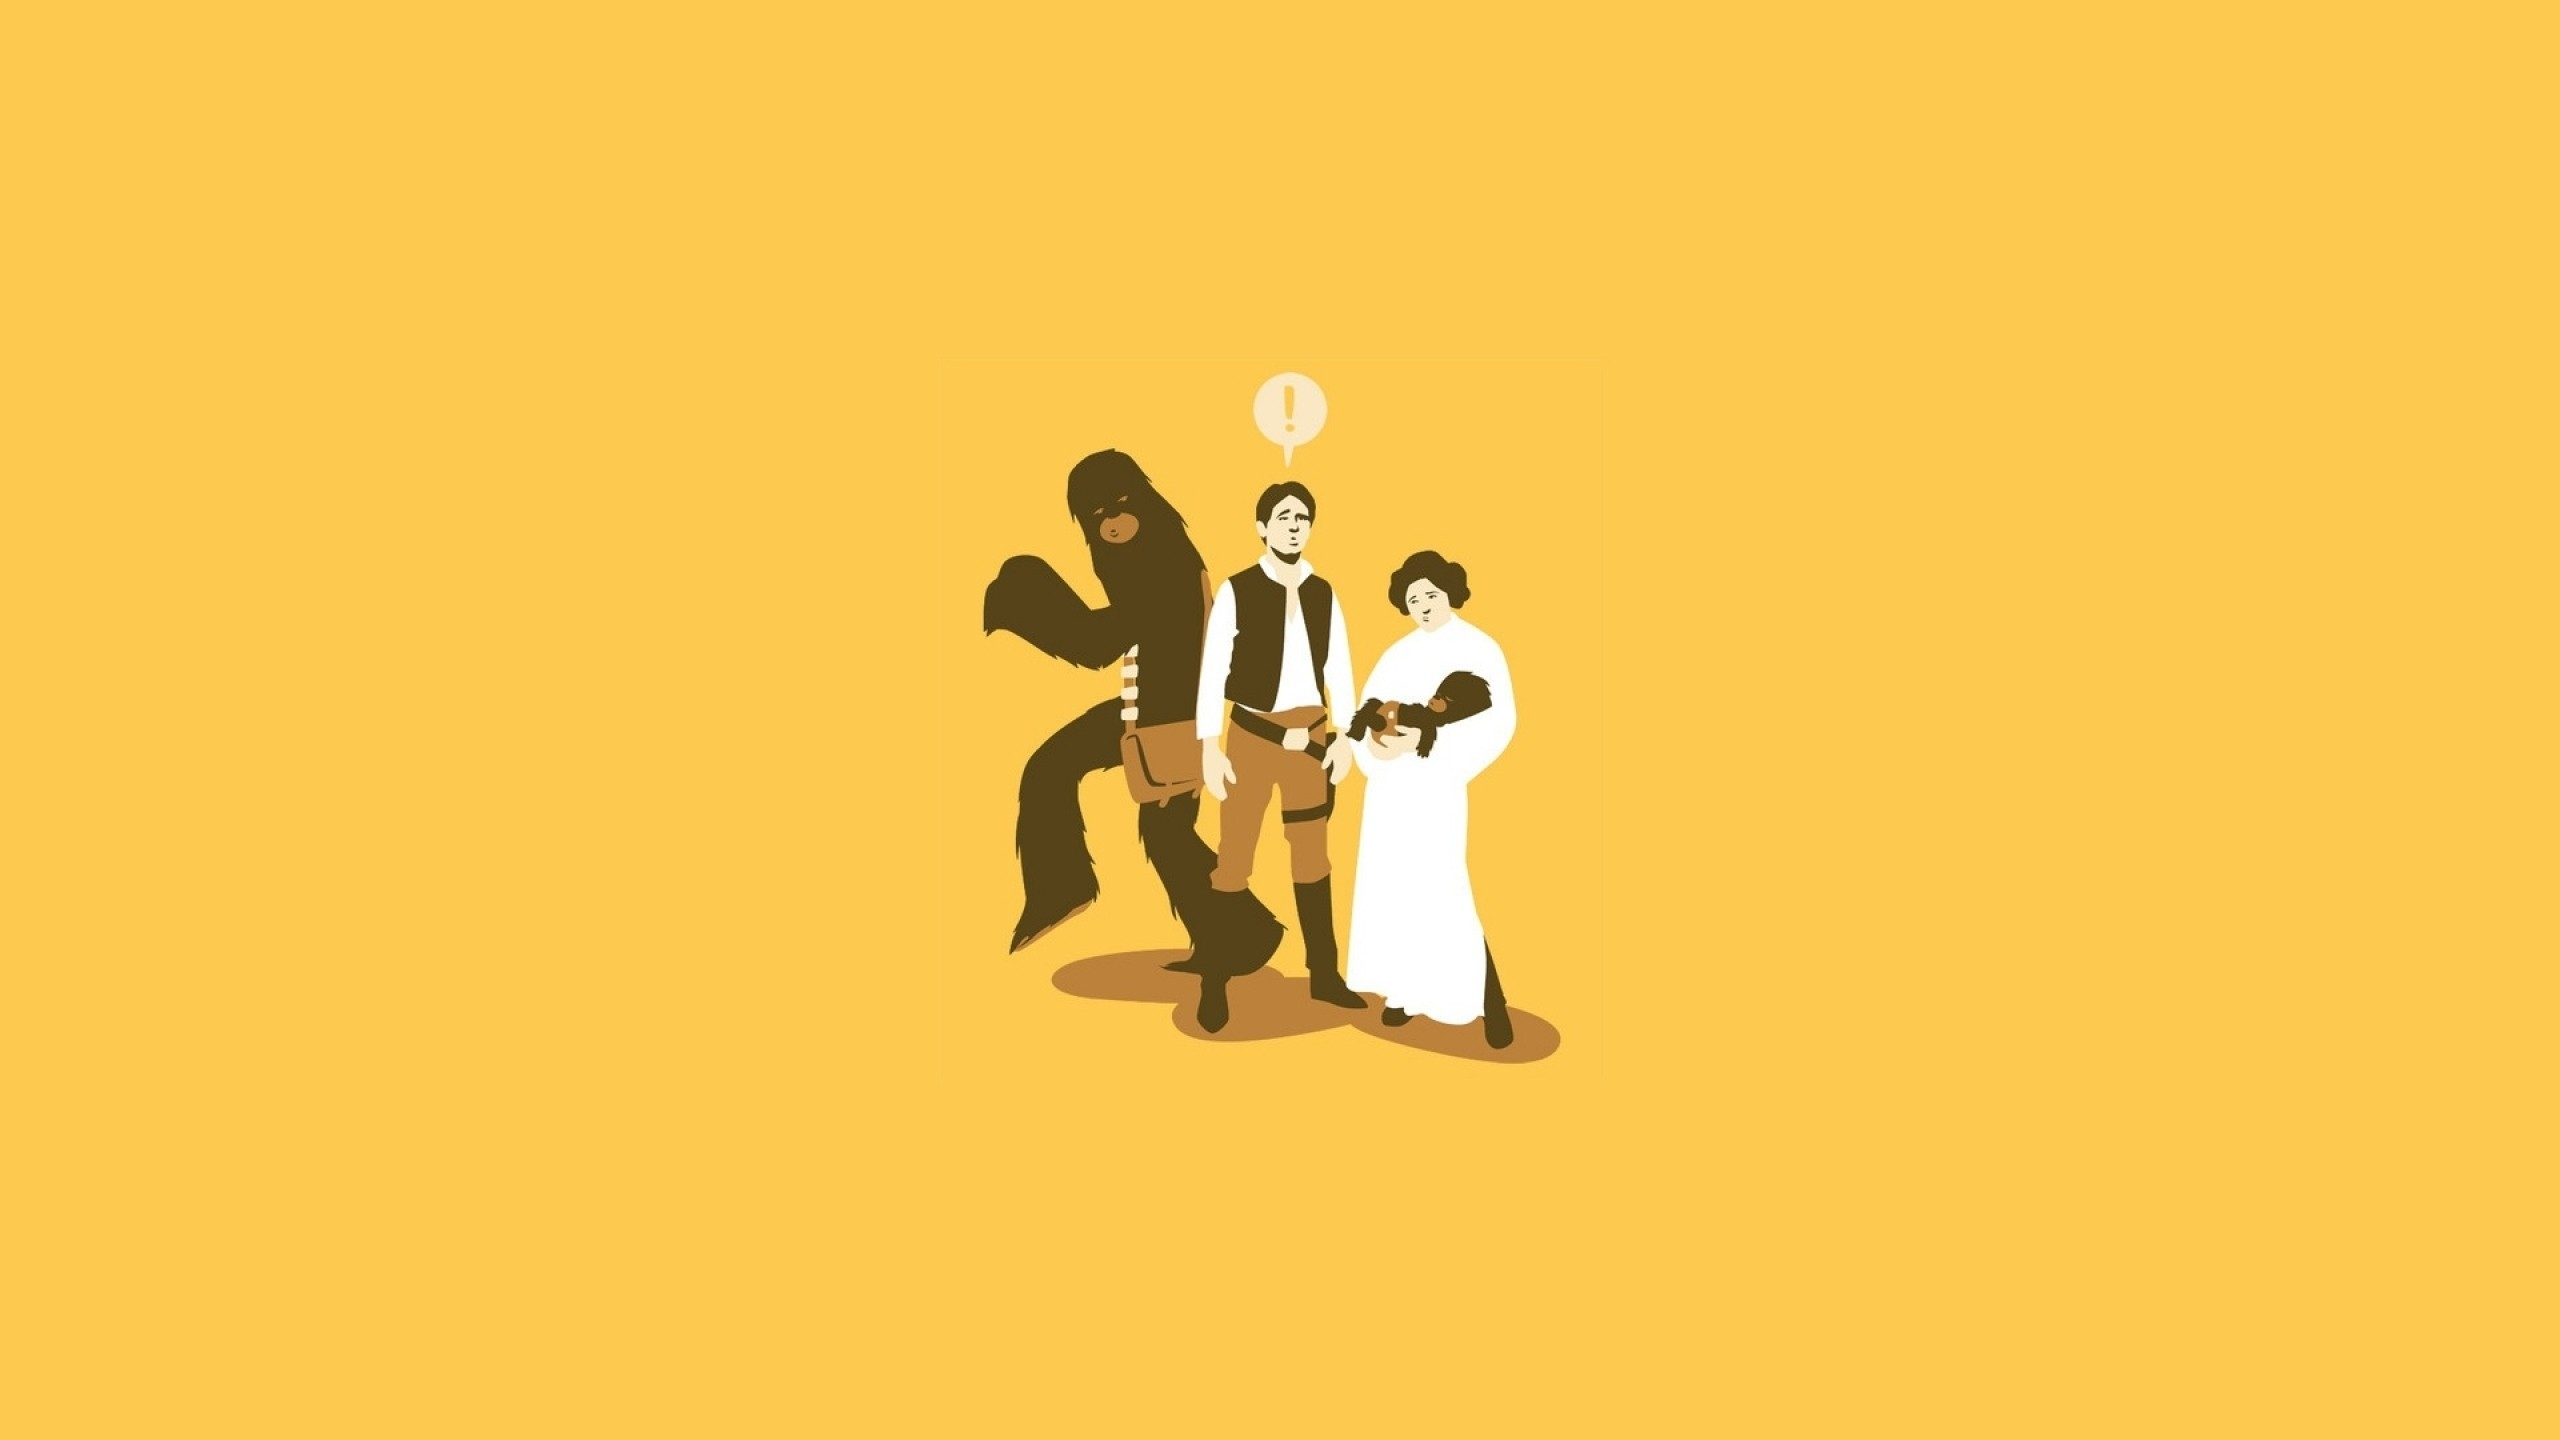 star wars characters drawing ZmVnbWuUmZqaraWkpJRnamtlrWZpaWU